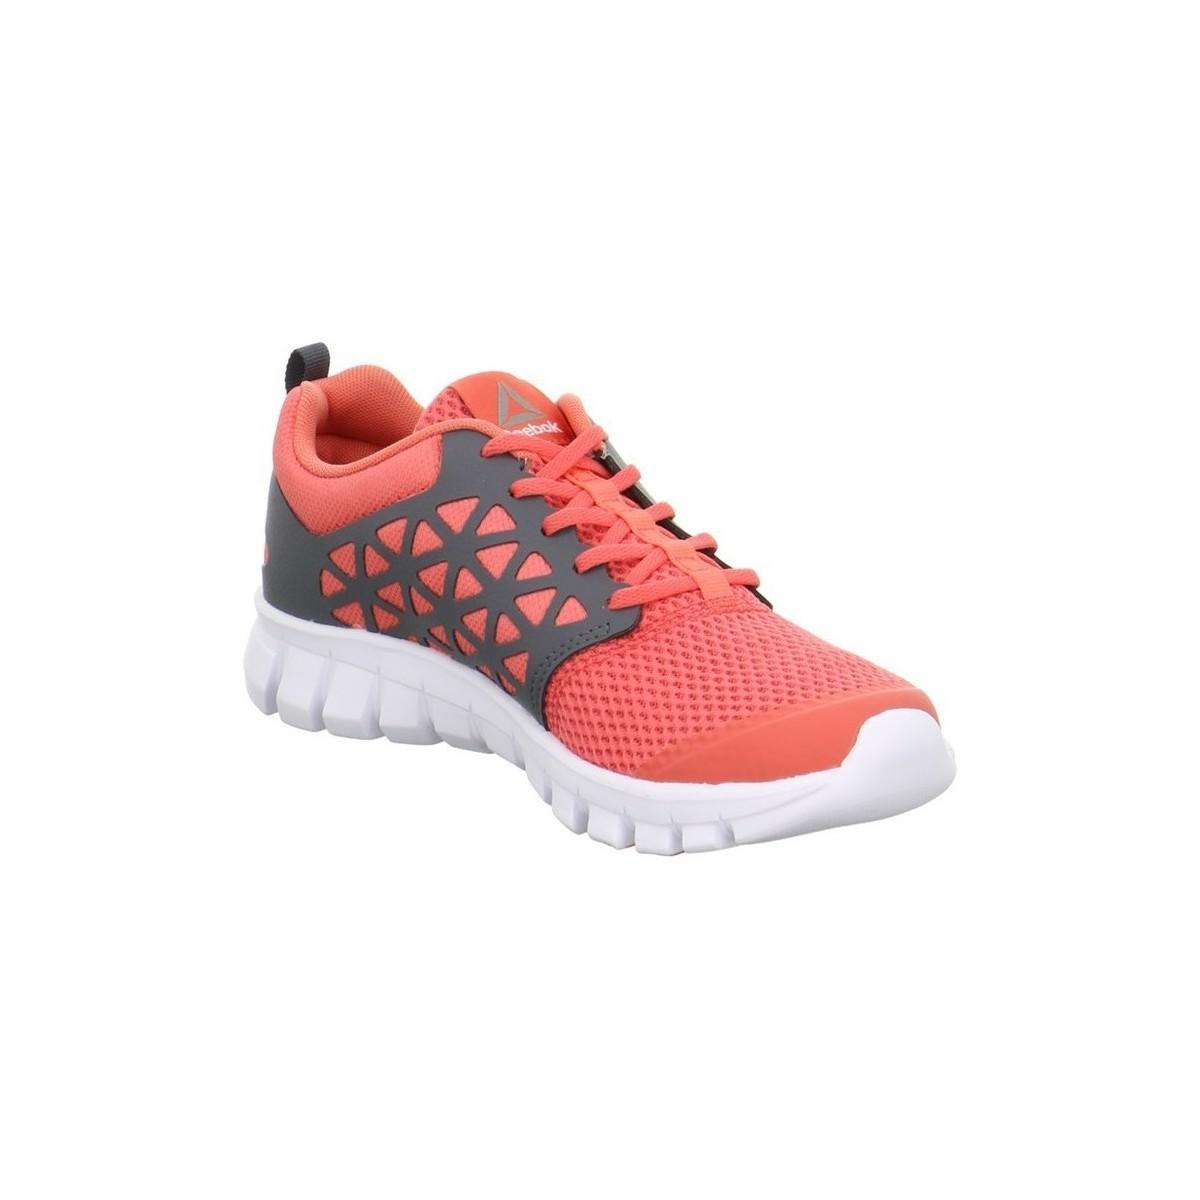 Reebok Sublite Xt Cushion Women's Shoes (trainers) In Pink